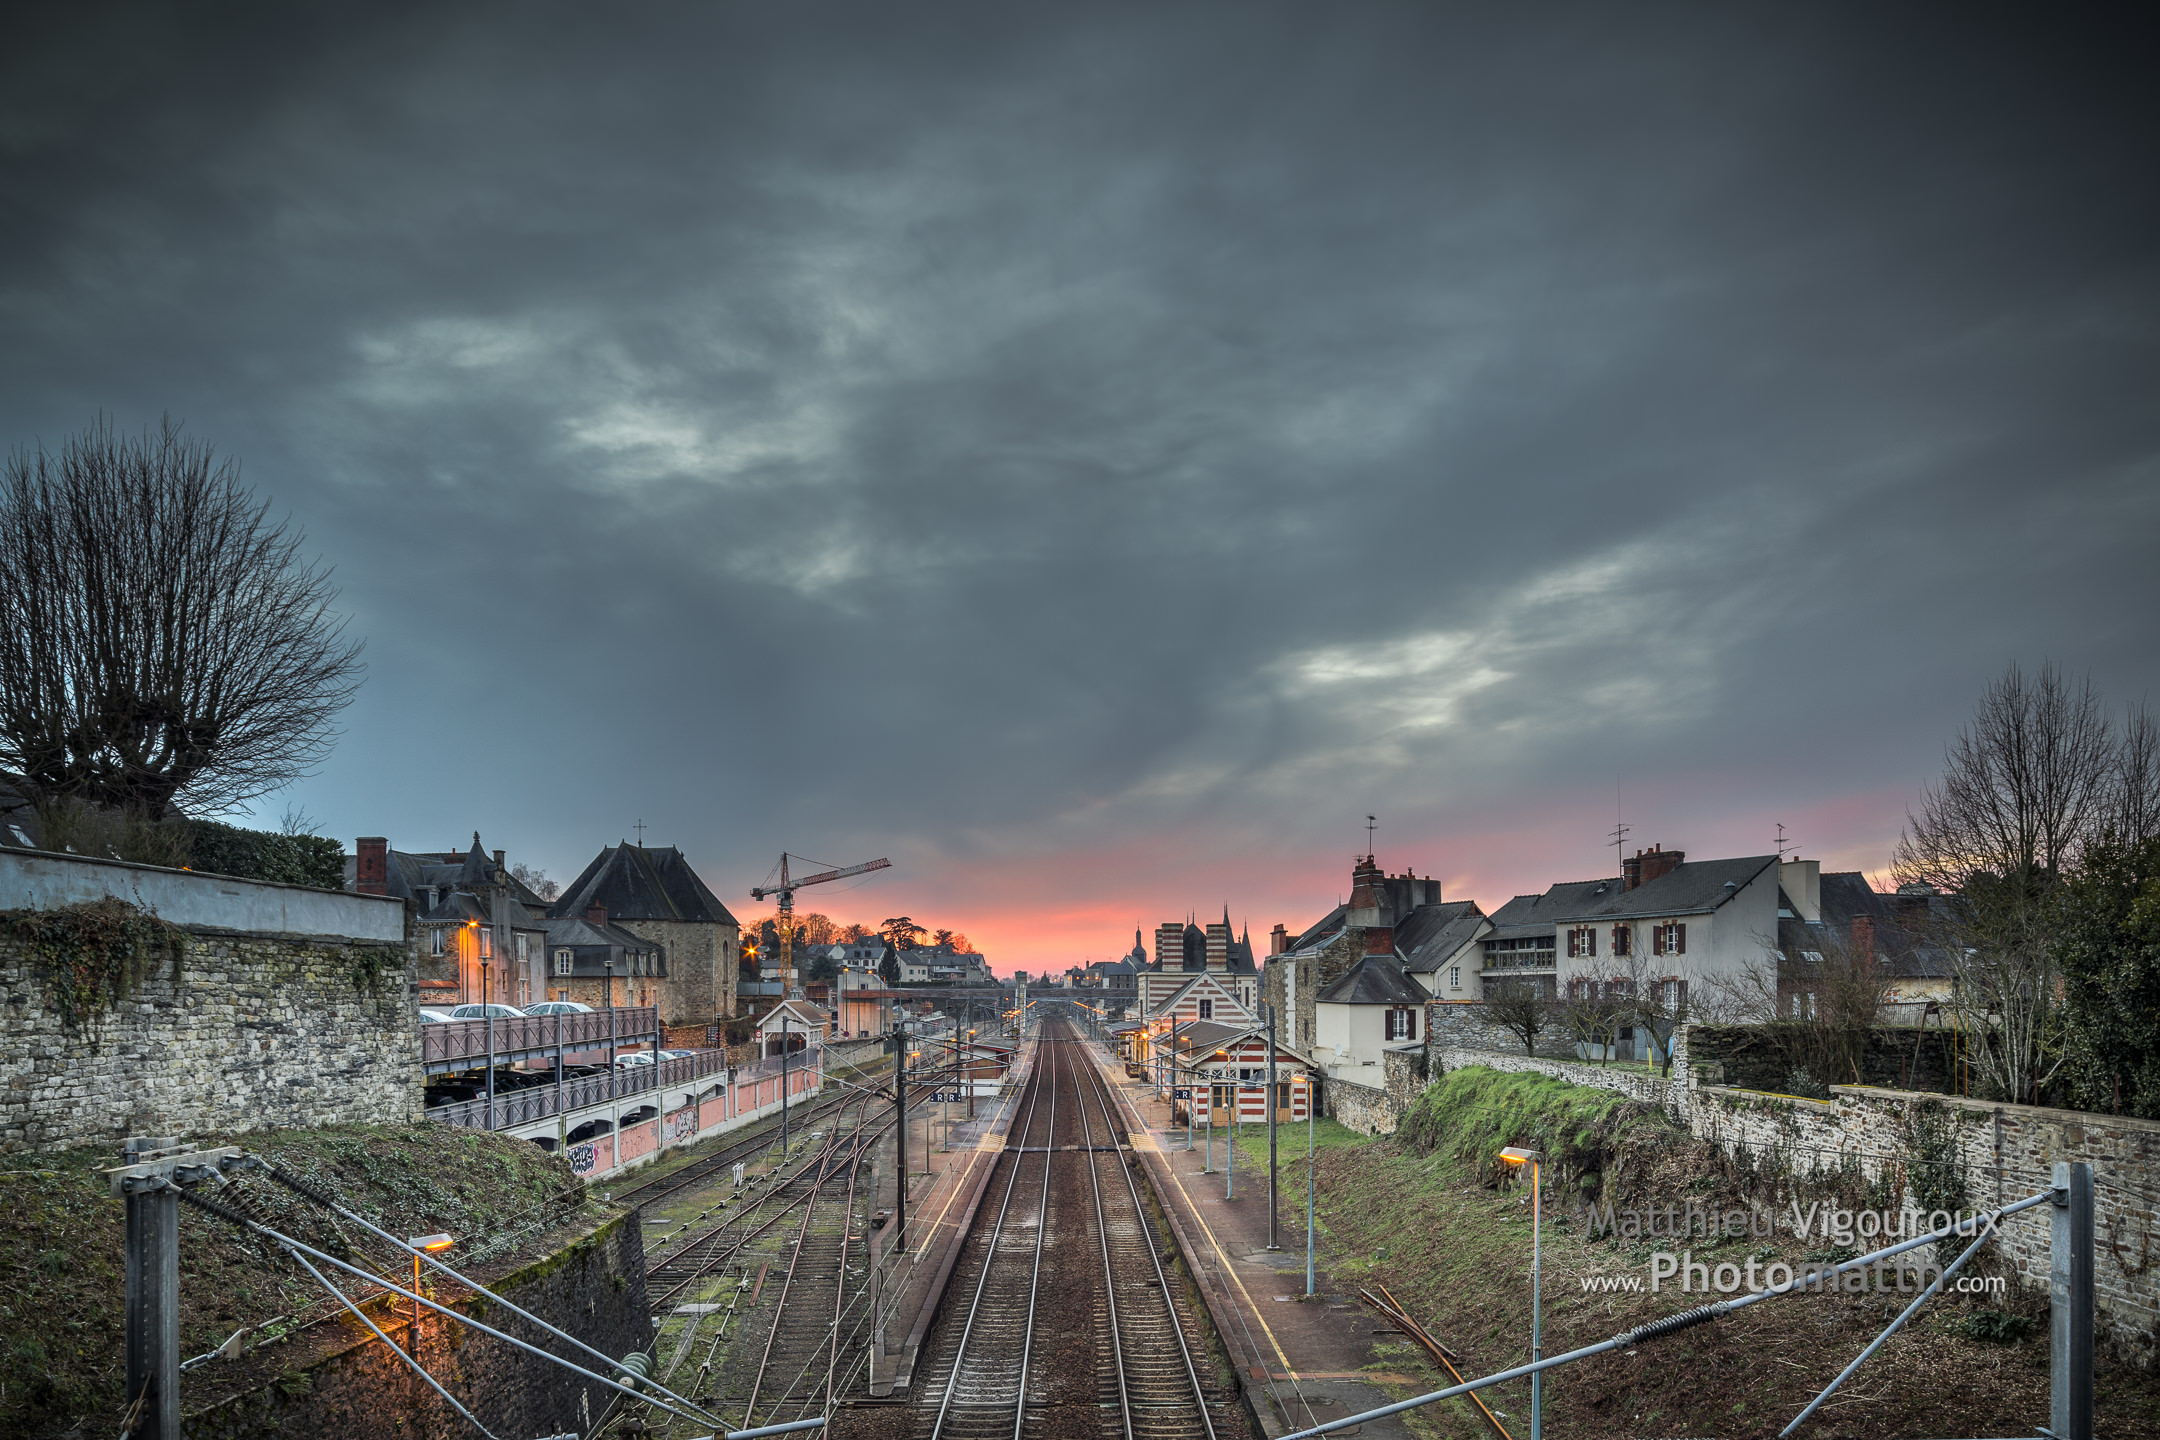 vitr coucher de soleil sur la gare sncf photomatth matthieu vigouroux photographe mariage. Black Bedroom Furniture Sets. Home Design Ideas